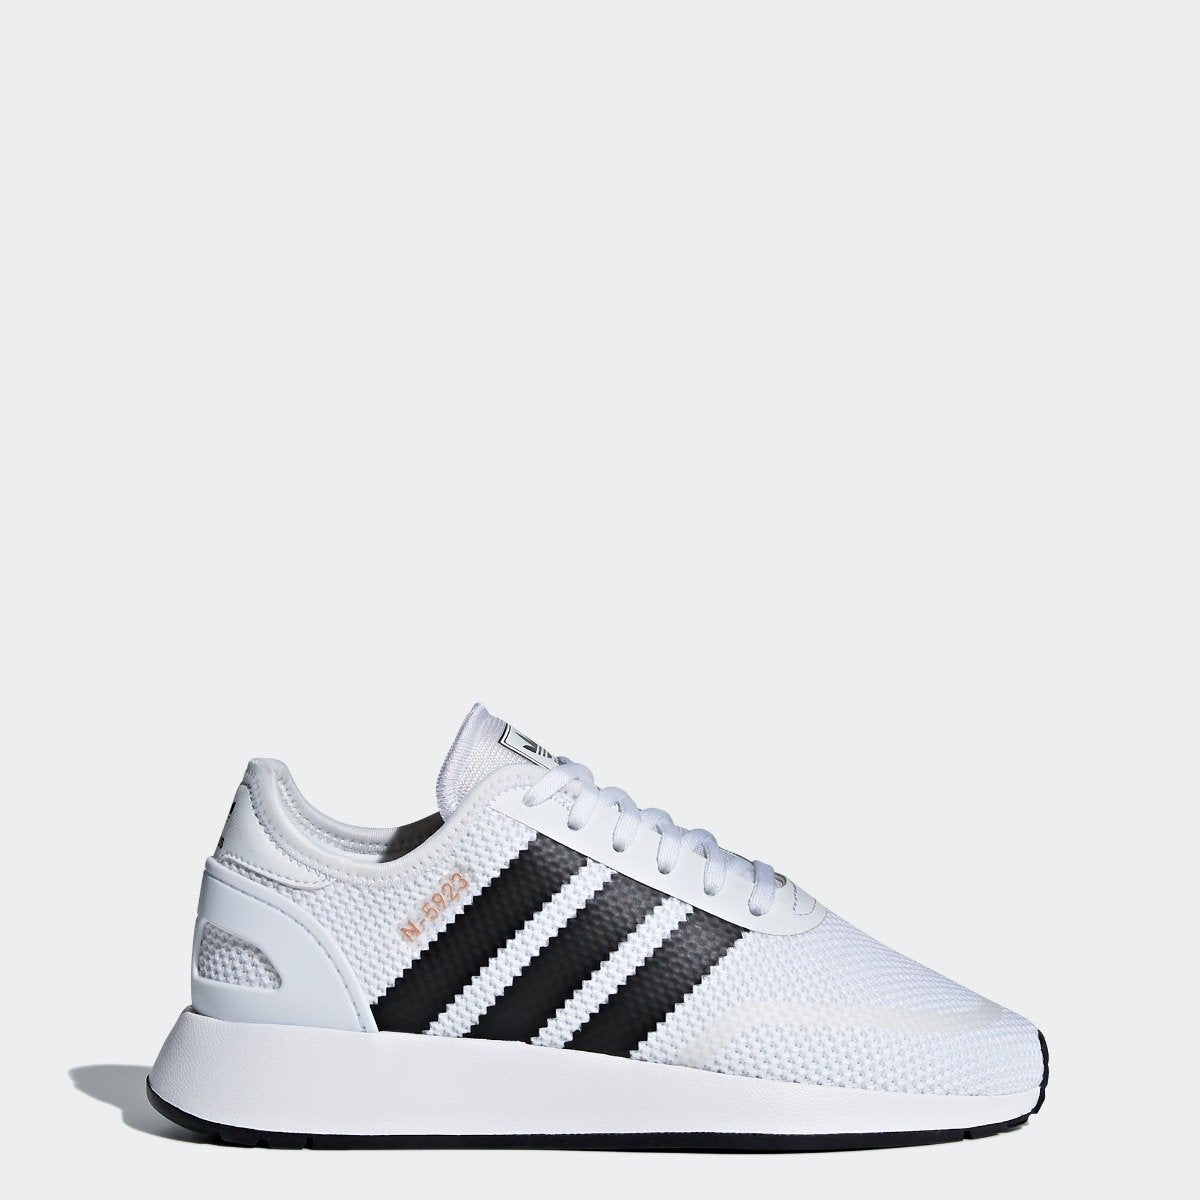 official photos 2a6ca 7db4d Kids adidas Originals N-5923 Shoes White with Black